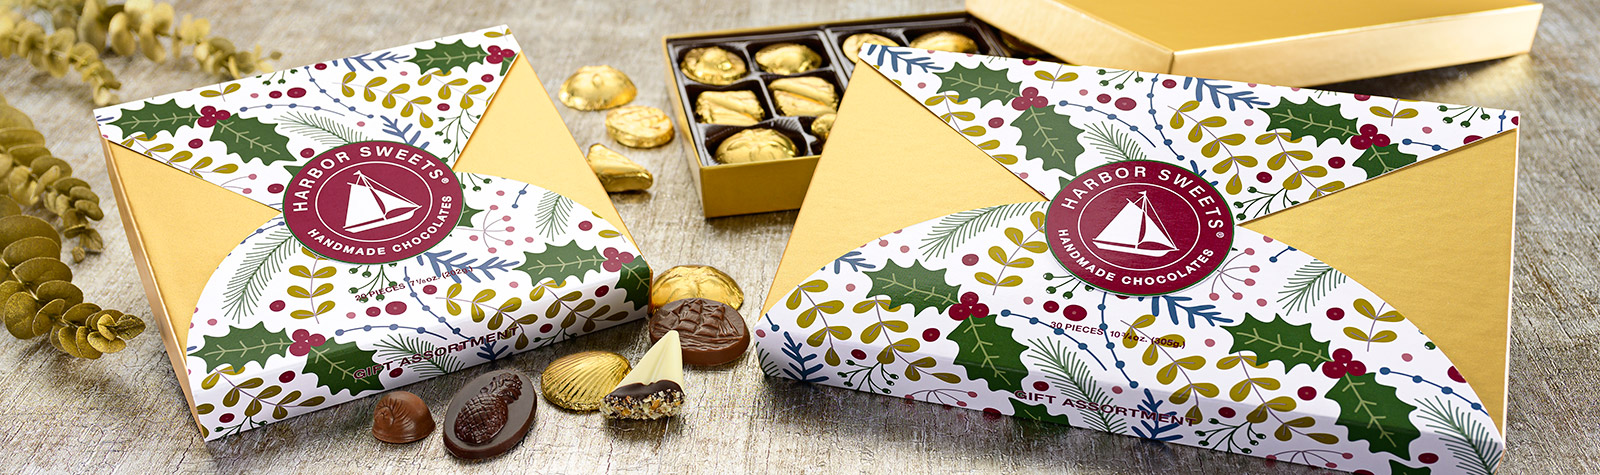 Holiday Wrapped Gift Assortment